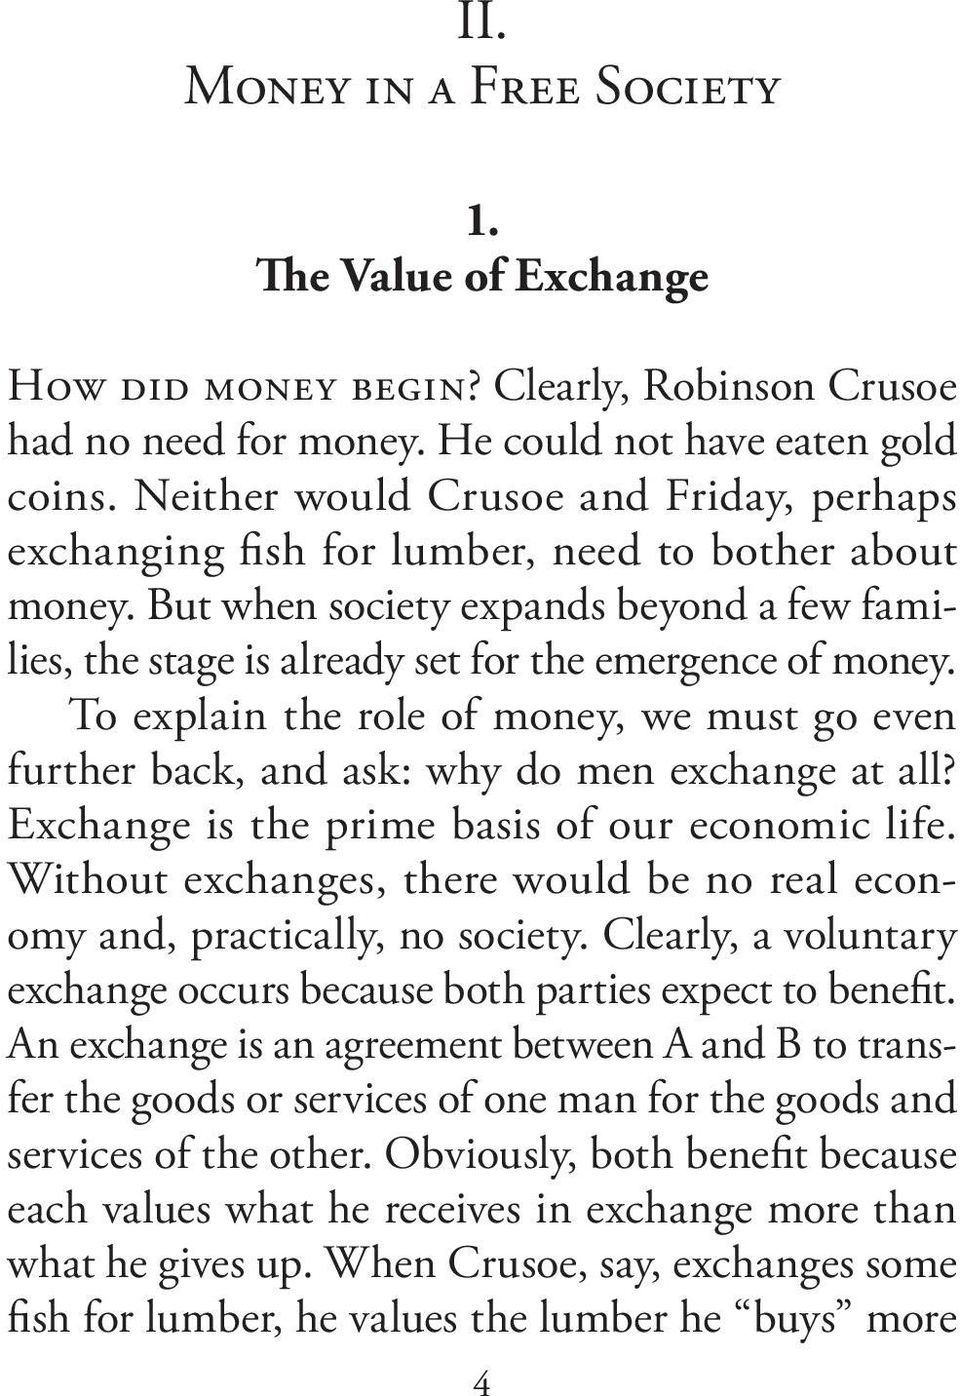 To explain the role of money, we must go even further back, and ask: why do men exchange at all? Exchange is the prime basis of our economic life.